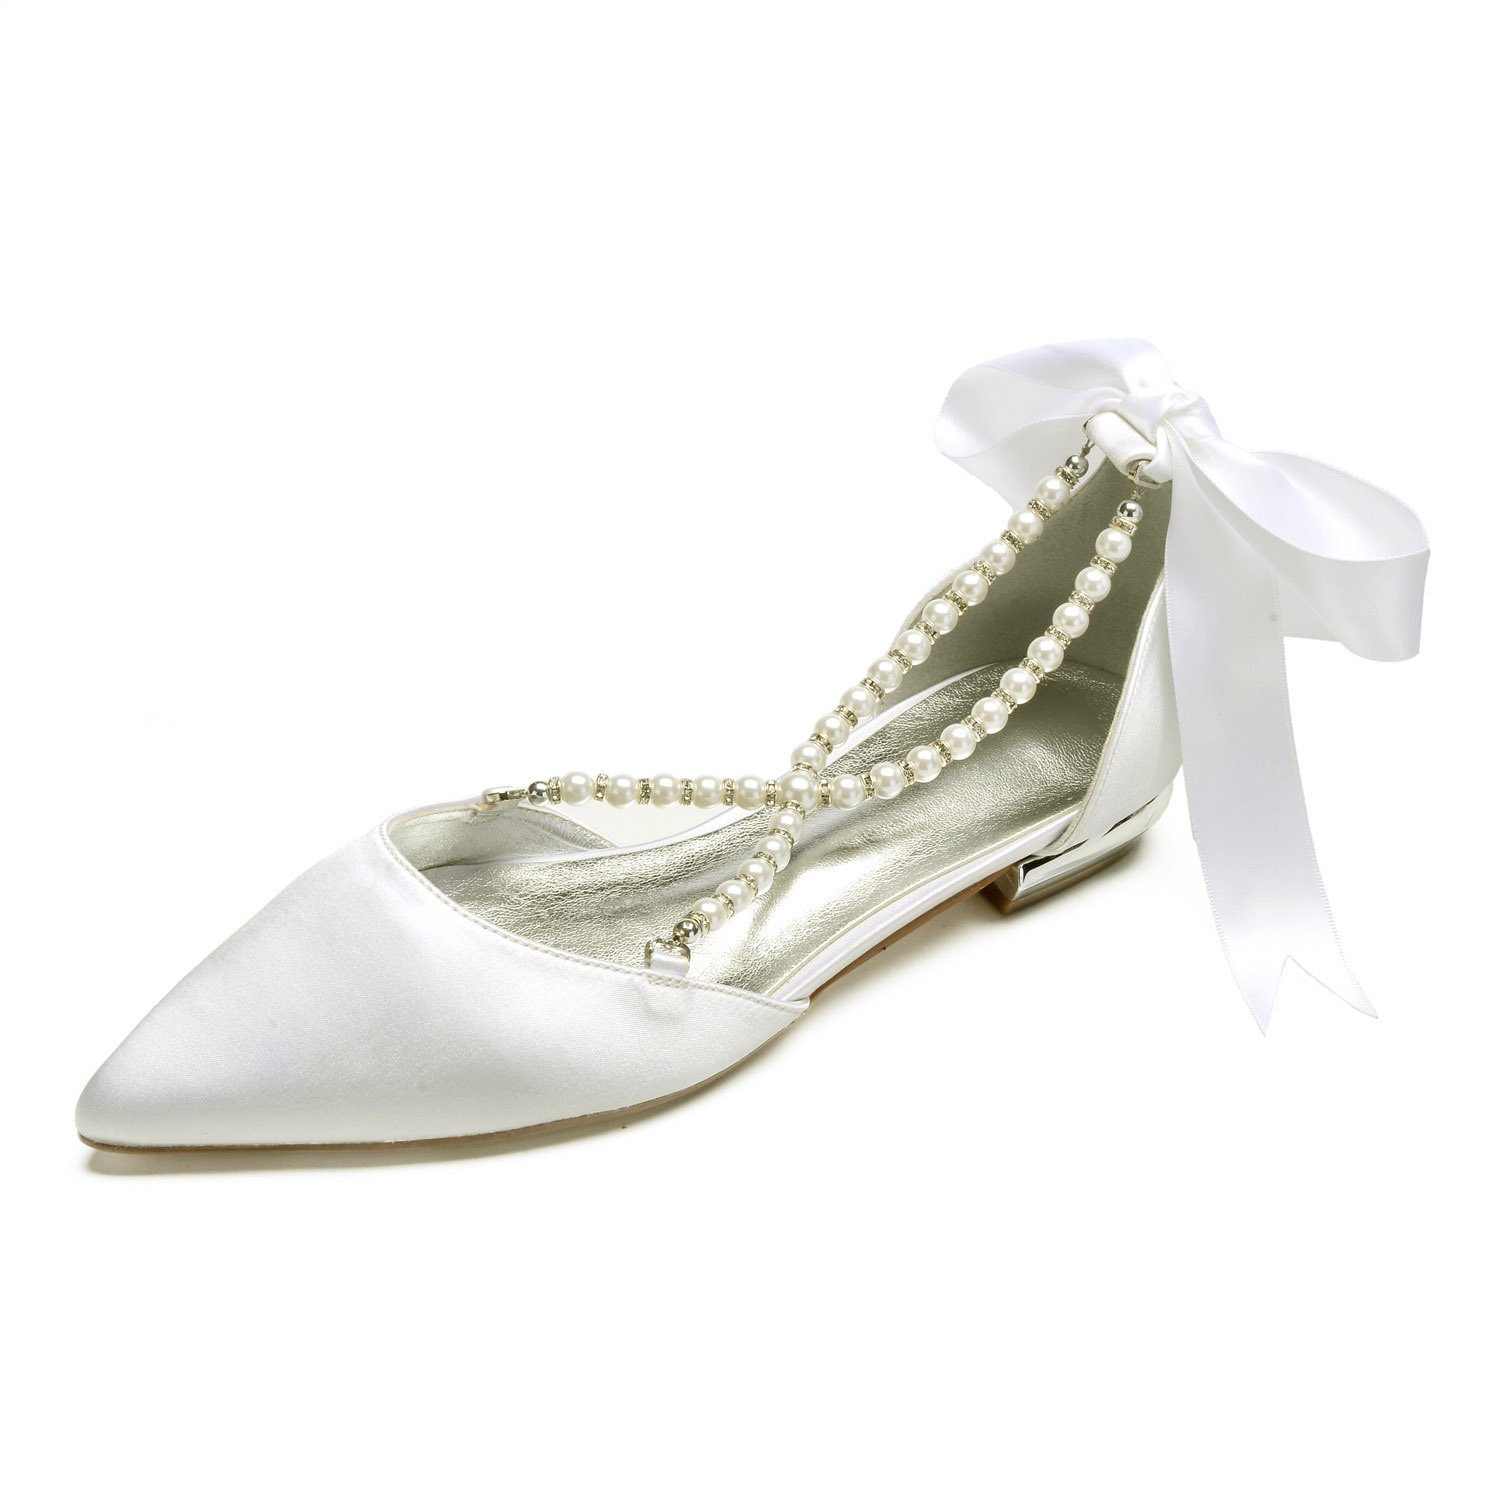 MarHermoso Womens Pointed Toe Cross Strap Pealrs Ribbon Tie Comfort Wedding Bridal Shoes B07FD3G4JD 10 B(M) US|Ivory